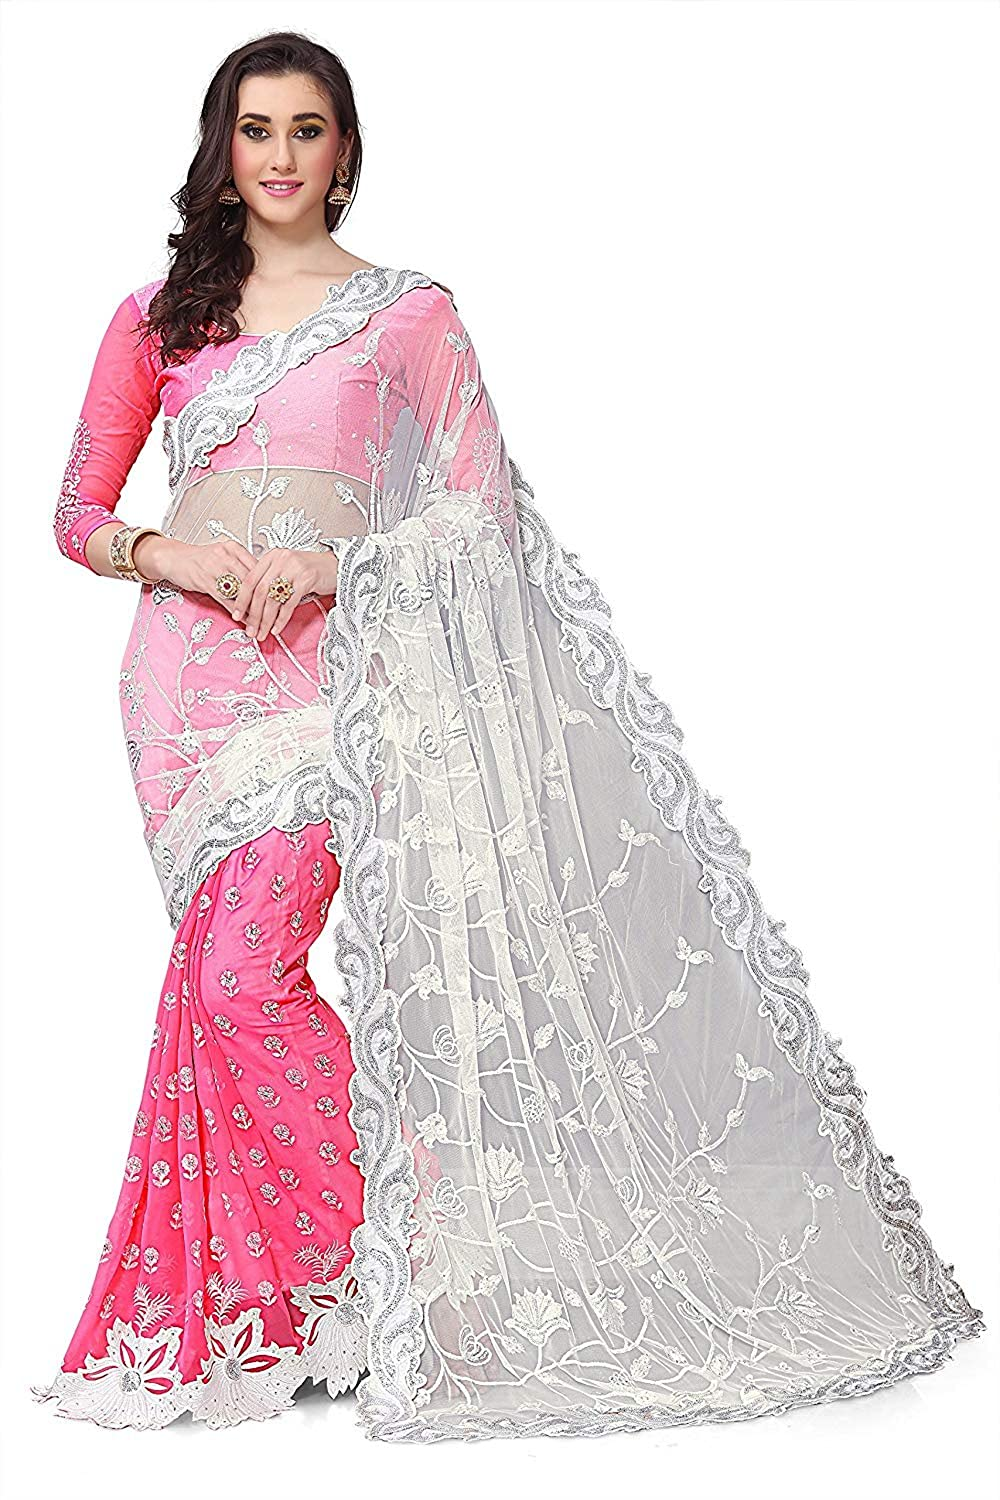 Diva   Diya Georgette Saree With Blouse Piece (ZoyaPink Pink Free Size)   Amazon.in  Clothing   Accessories 21500460e